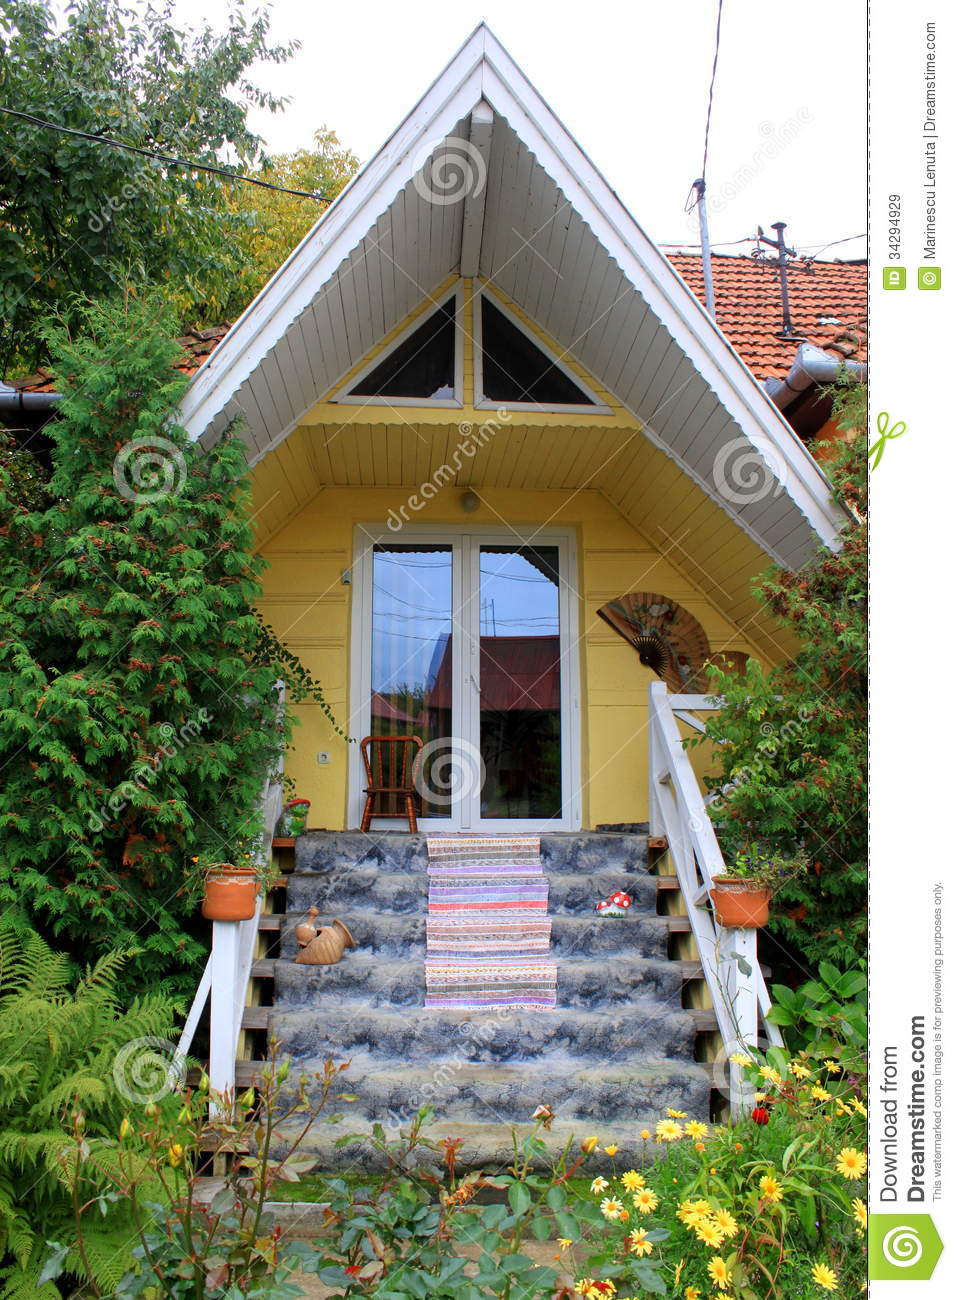 Admirable Small House Royalty Free Stock Images Image 34294929 Largest Home Design Picture Inspirations Pitcheantrous